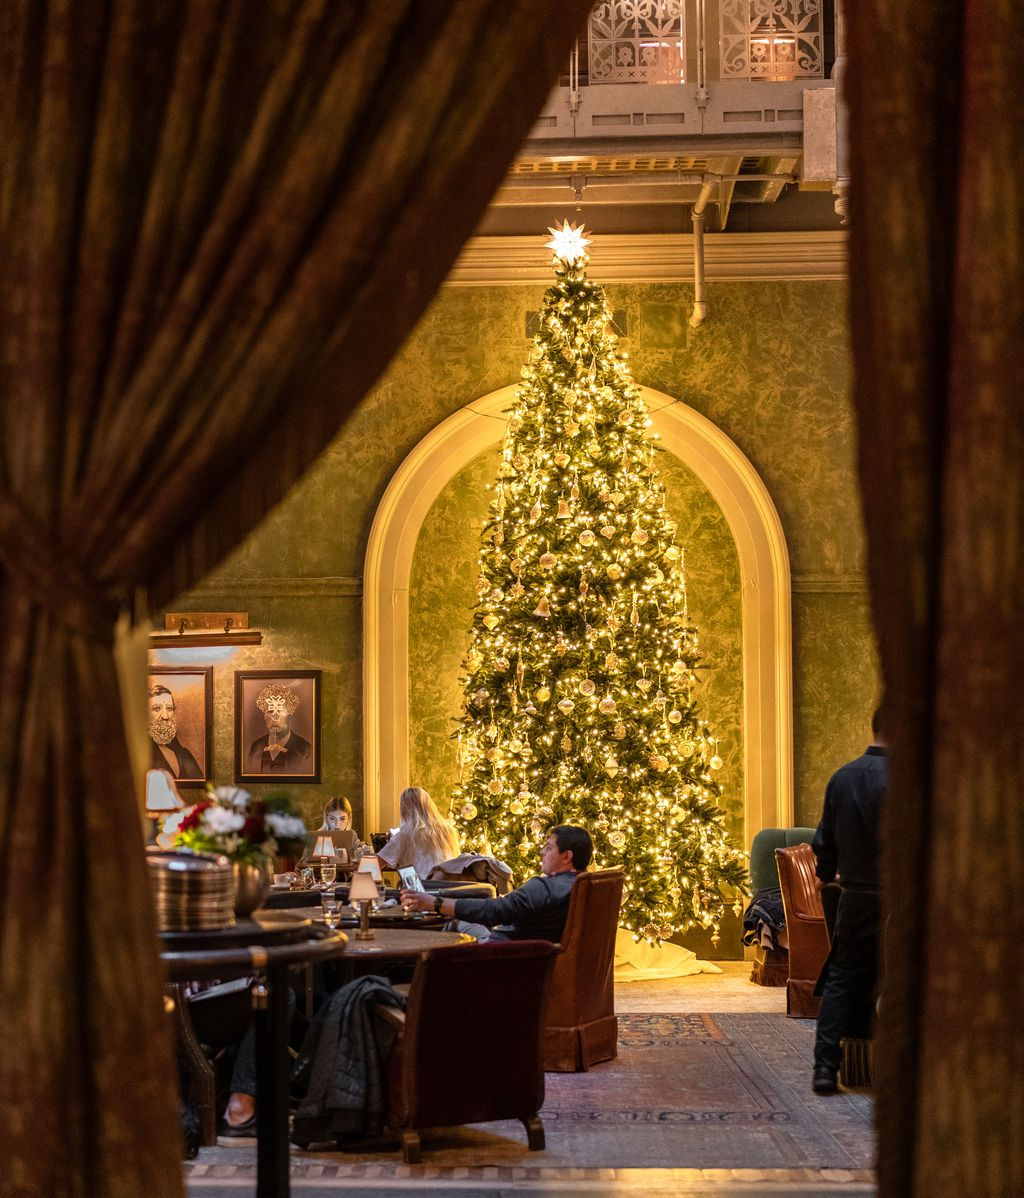 Arbol del Hotel The beekman